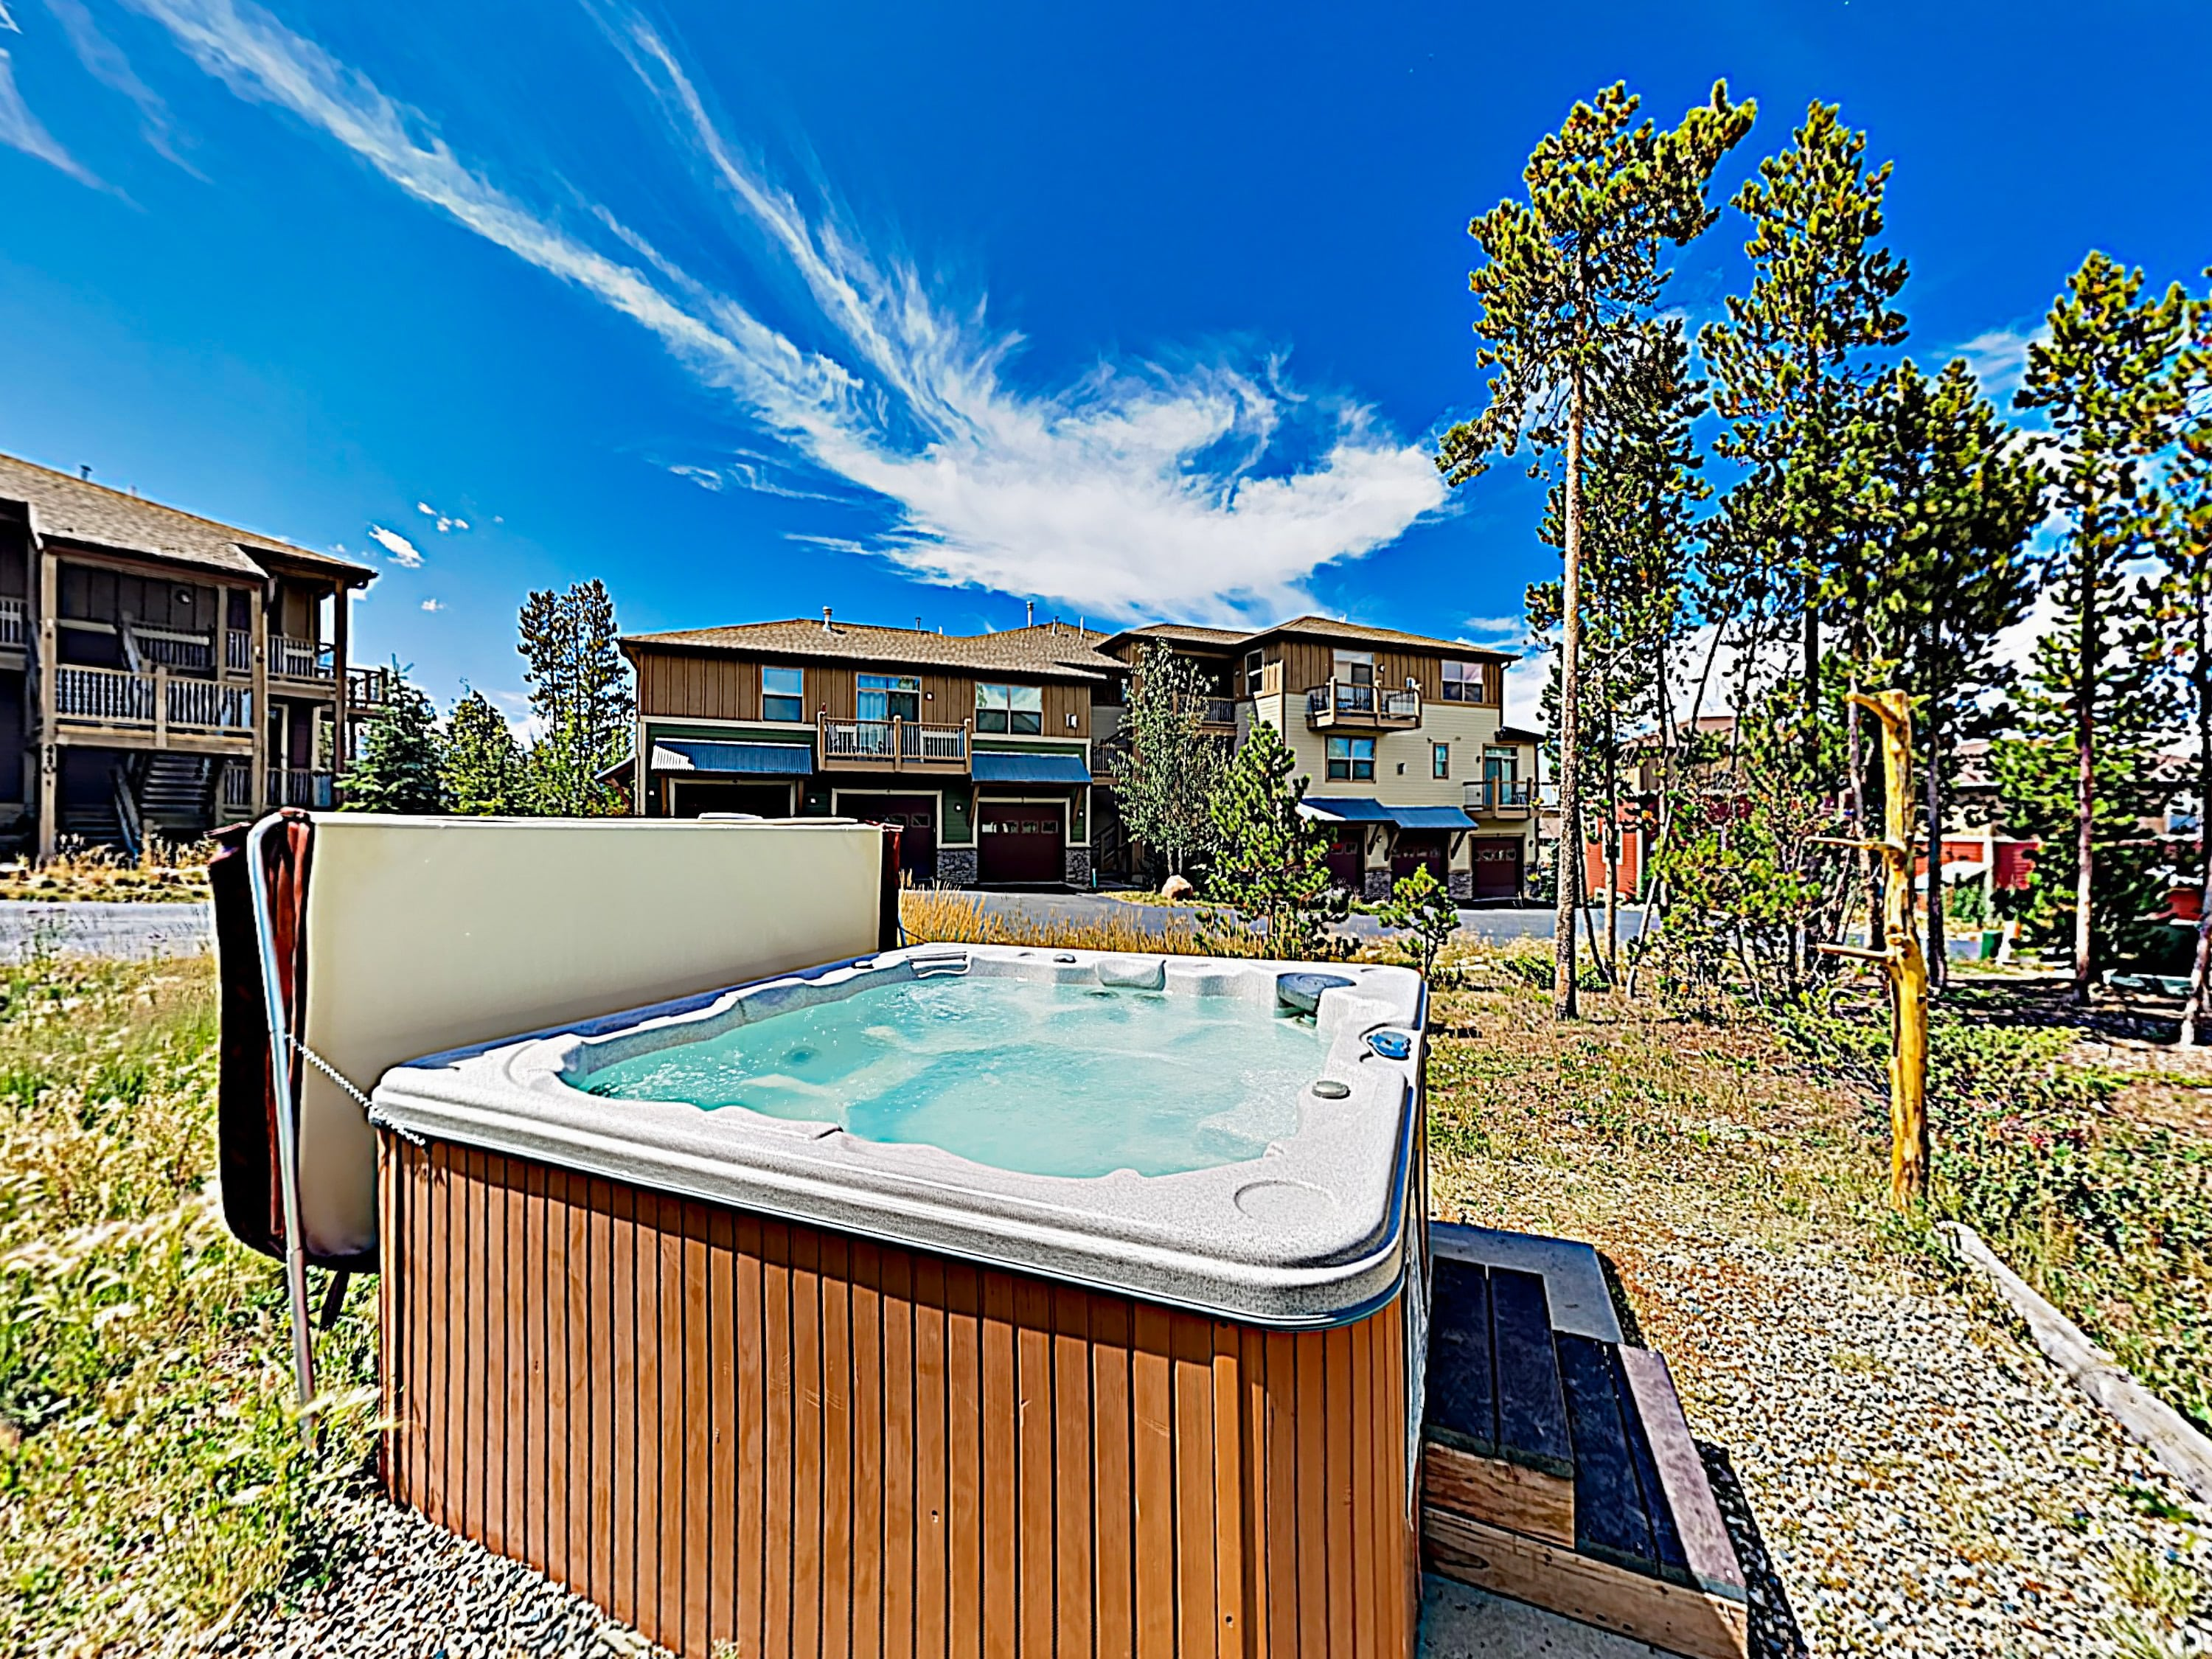 After days on the slopes, soak in the 2 community hot tubs just outside your door.